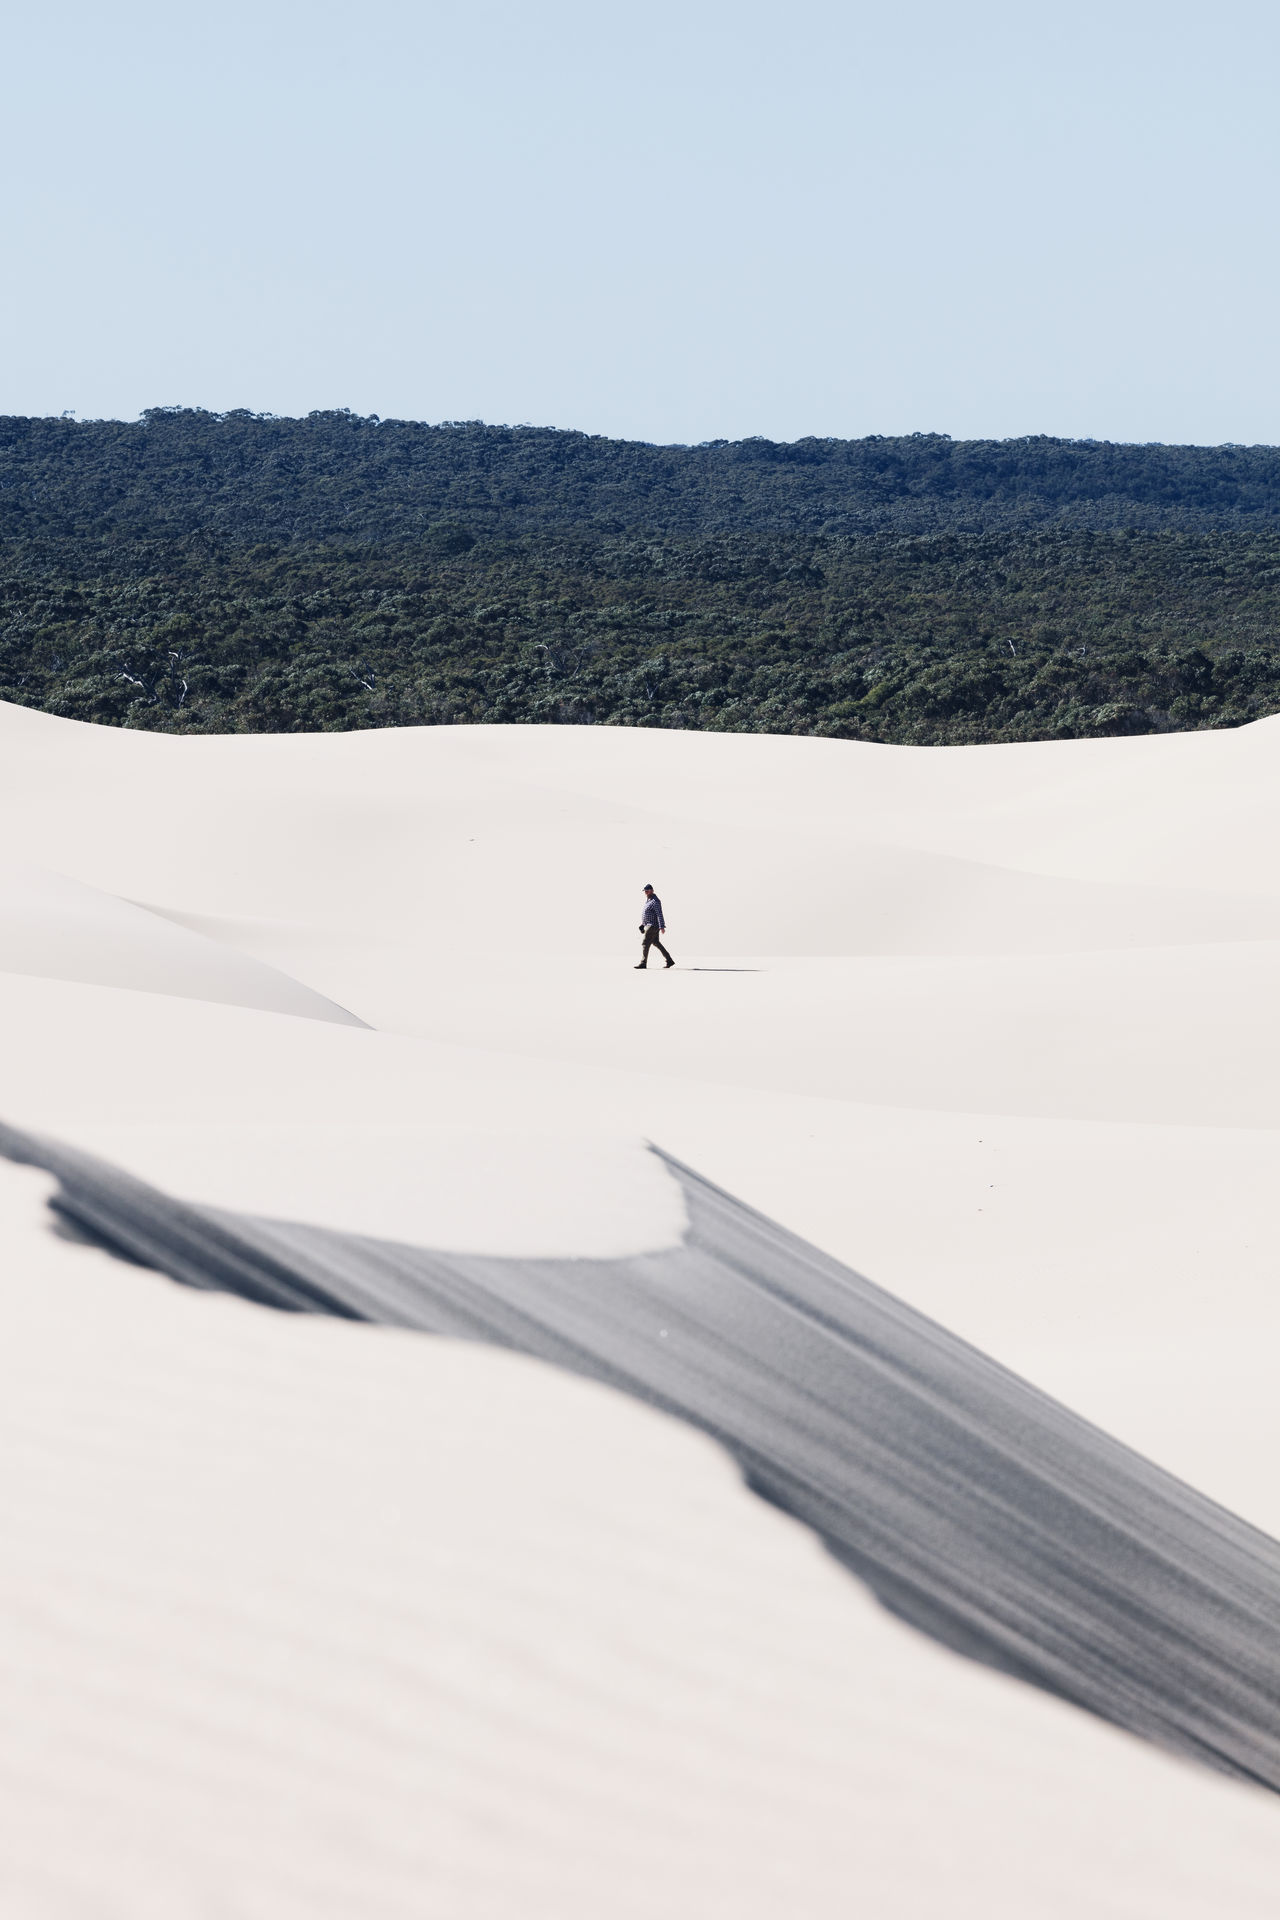 A lone person walks along the Stockton Sand Dunes Adventures Australia Australia lifestyle Australia travel EyeEmNewHere Leading Lines The Week on EyeEm adventure arid climate beauty in Nature day Desert landscape layers one man only one person outdoors real people sand dune walking walking alone...